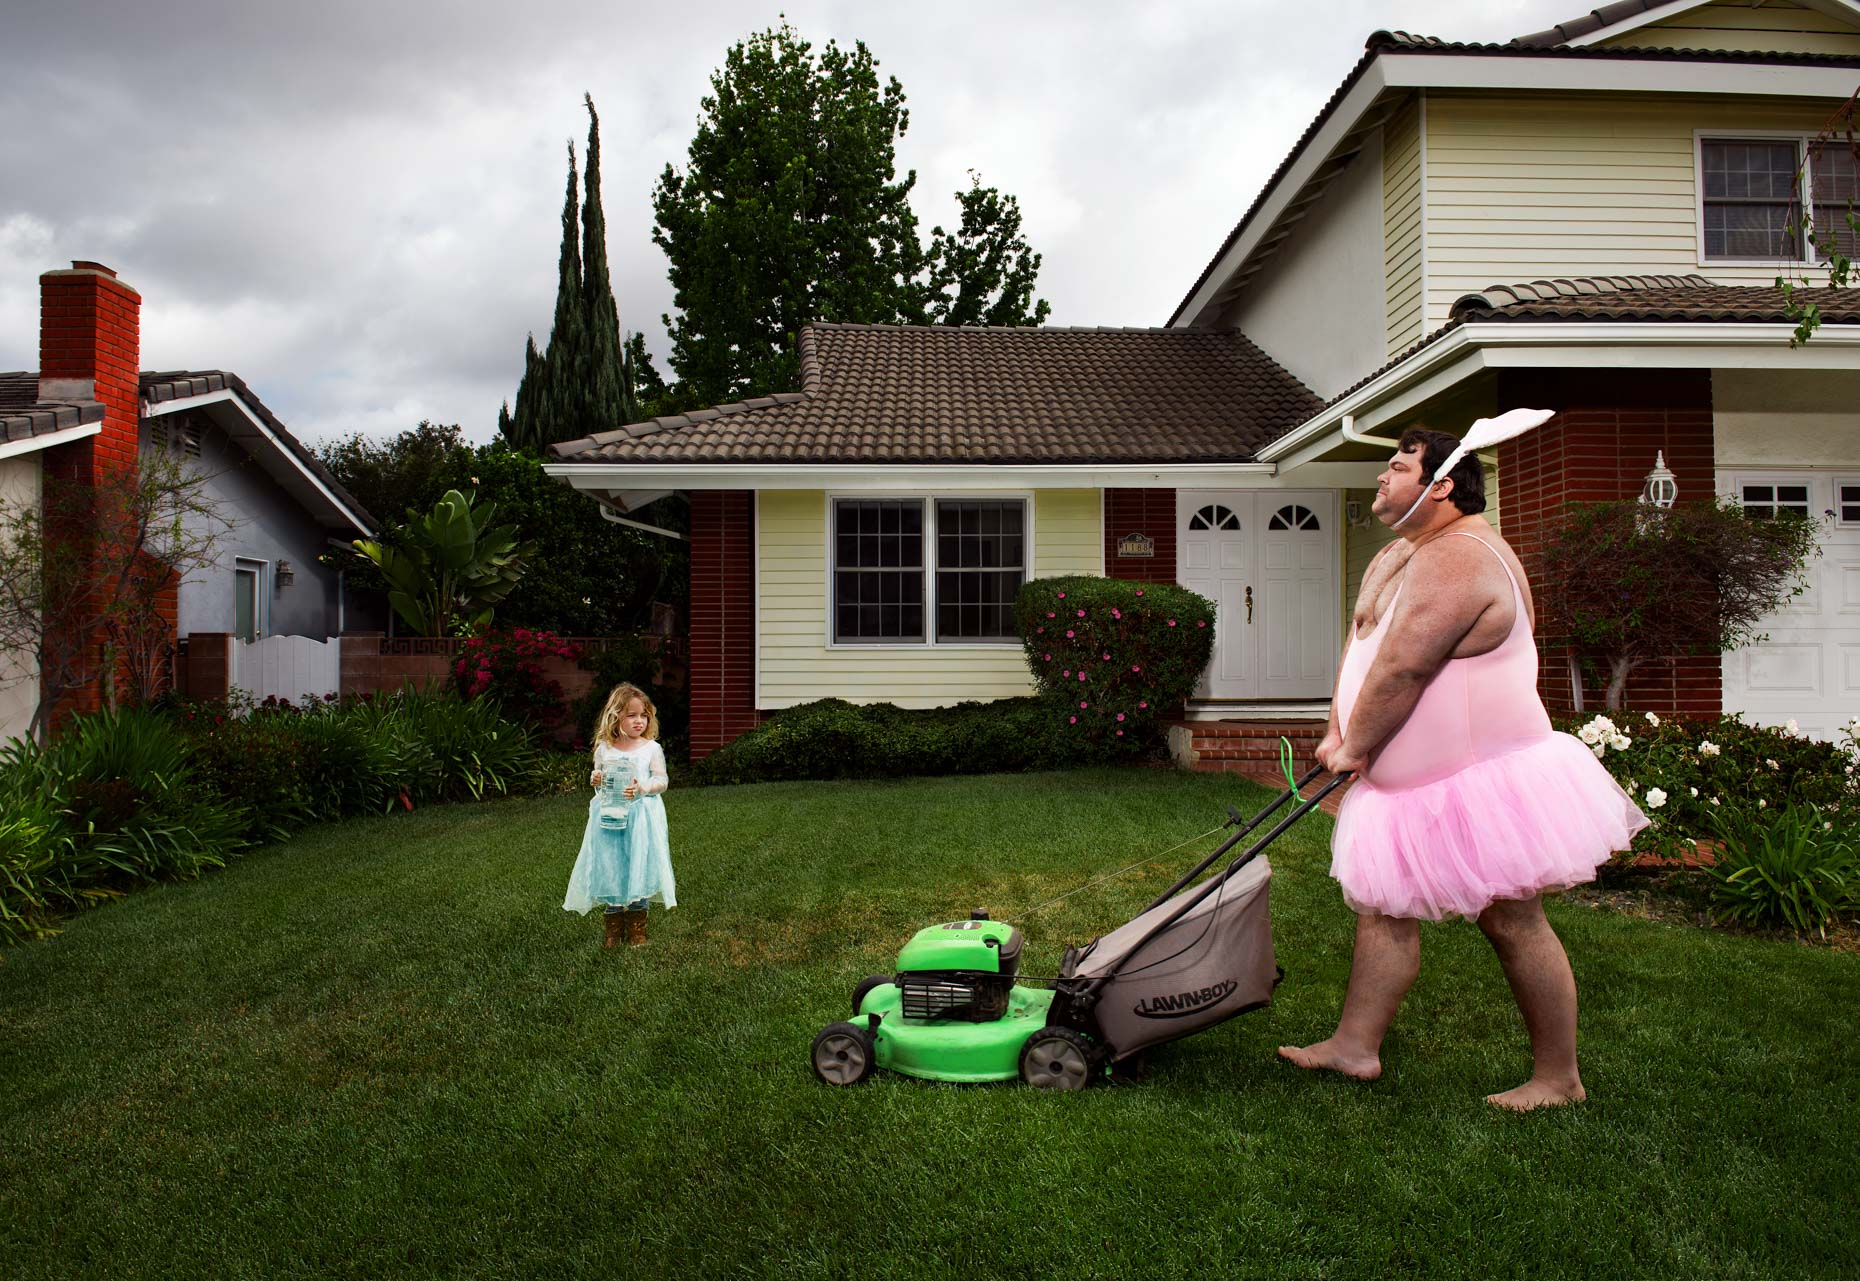 Bunny-Ballerina-Man-Mows-Lawn-With-Princess-Daughter